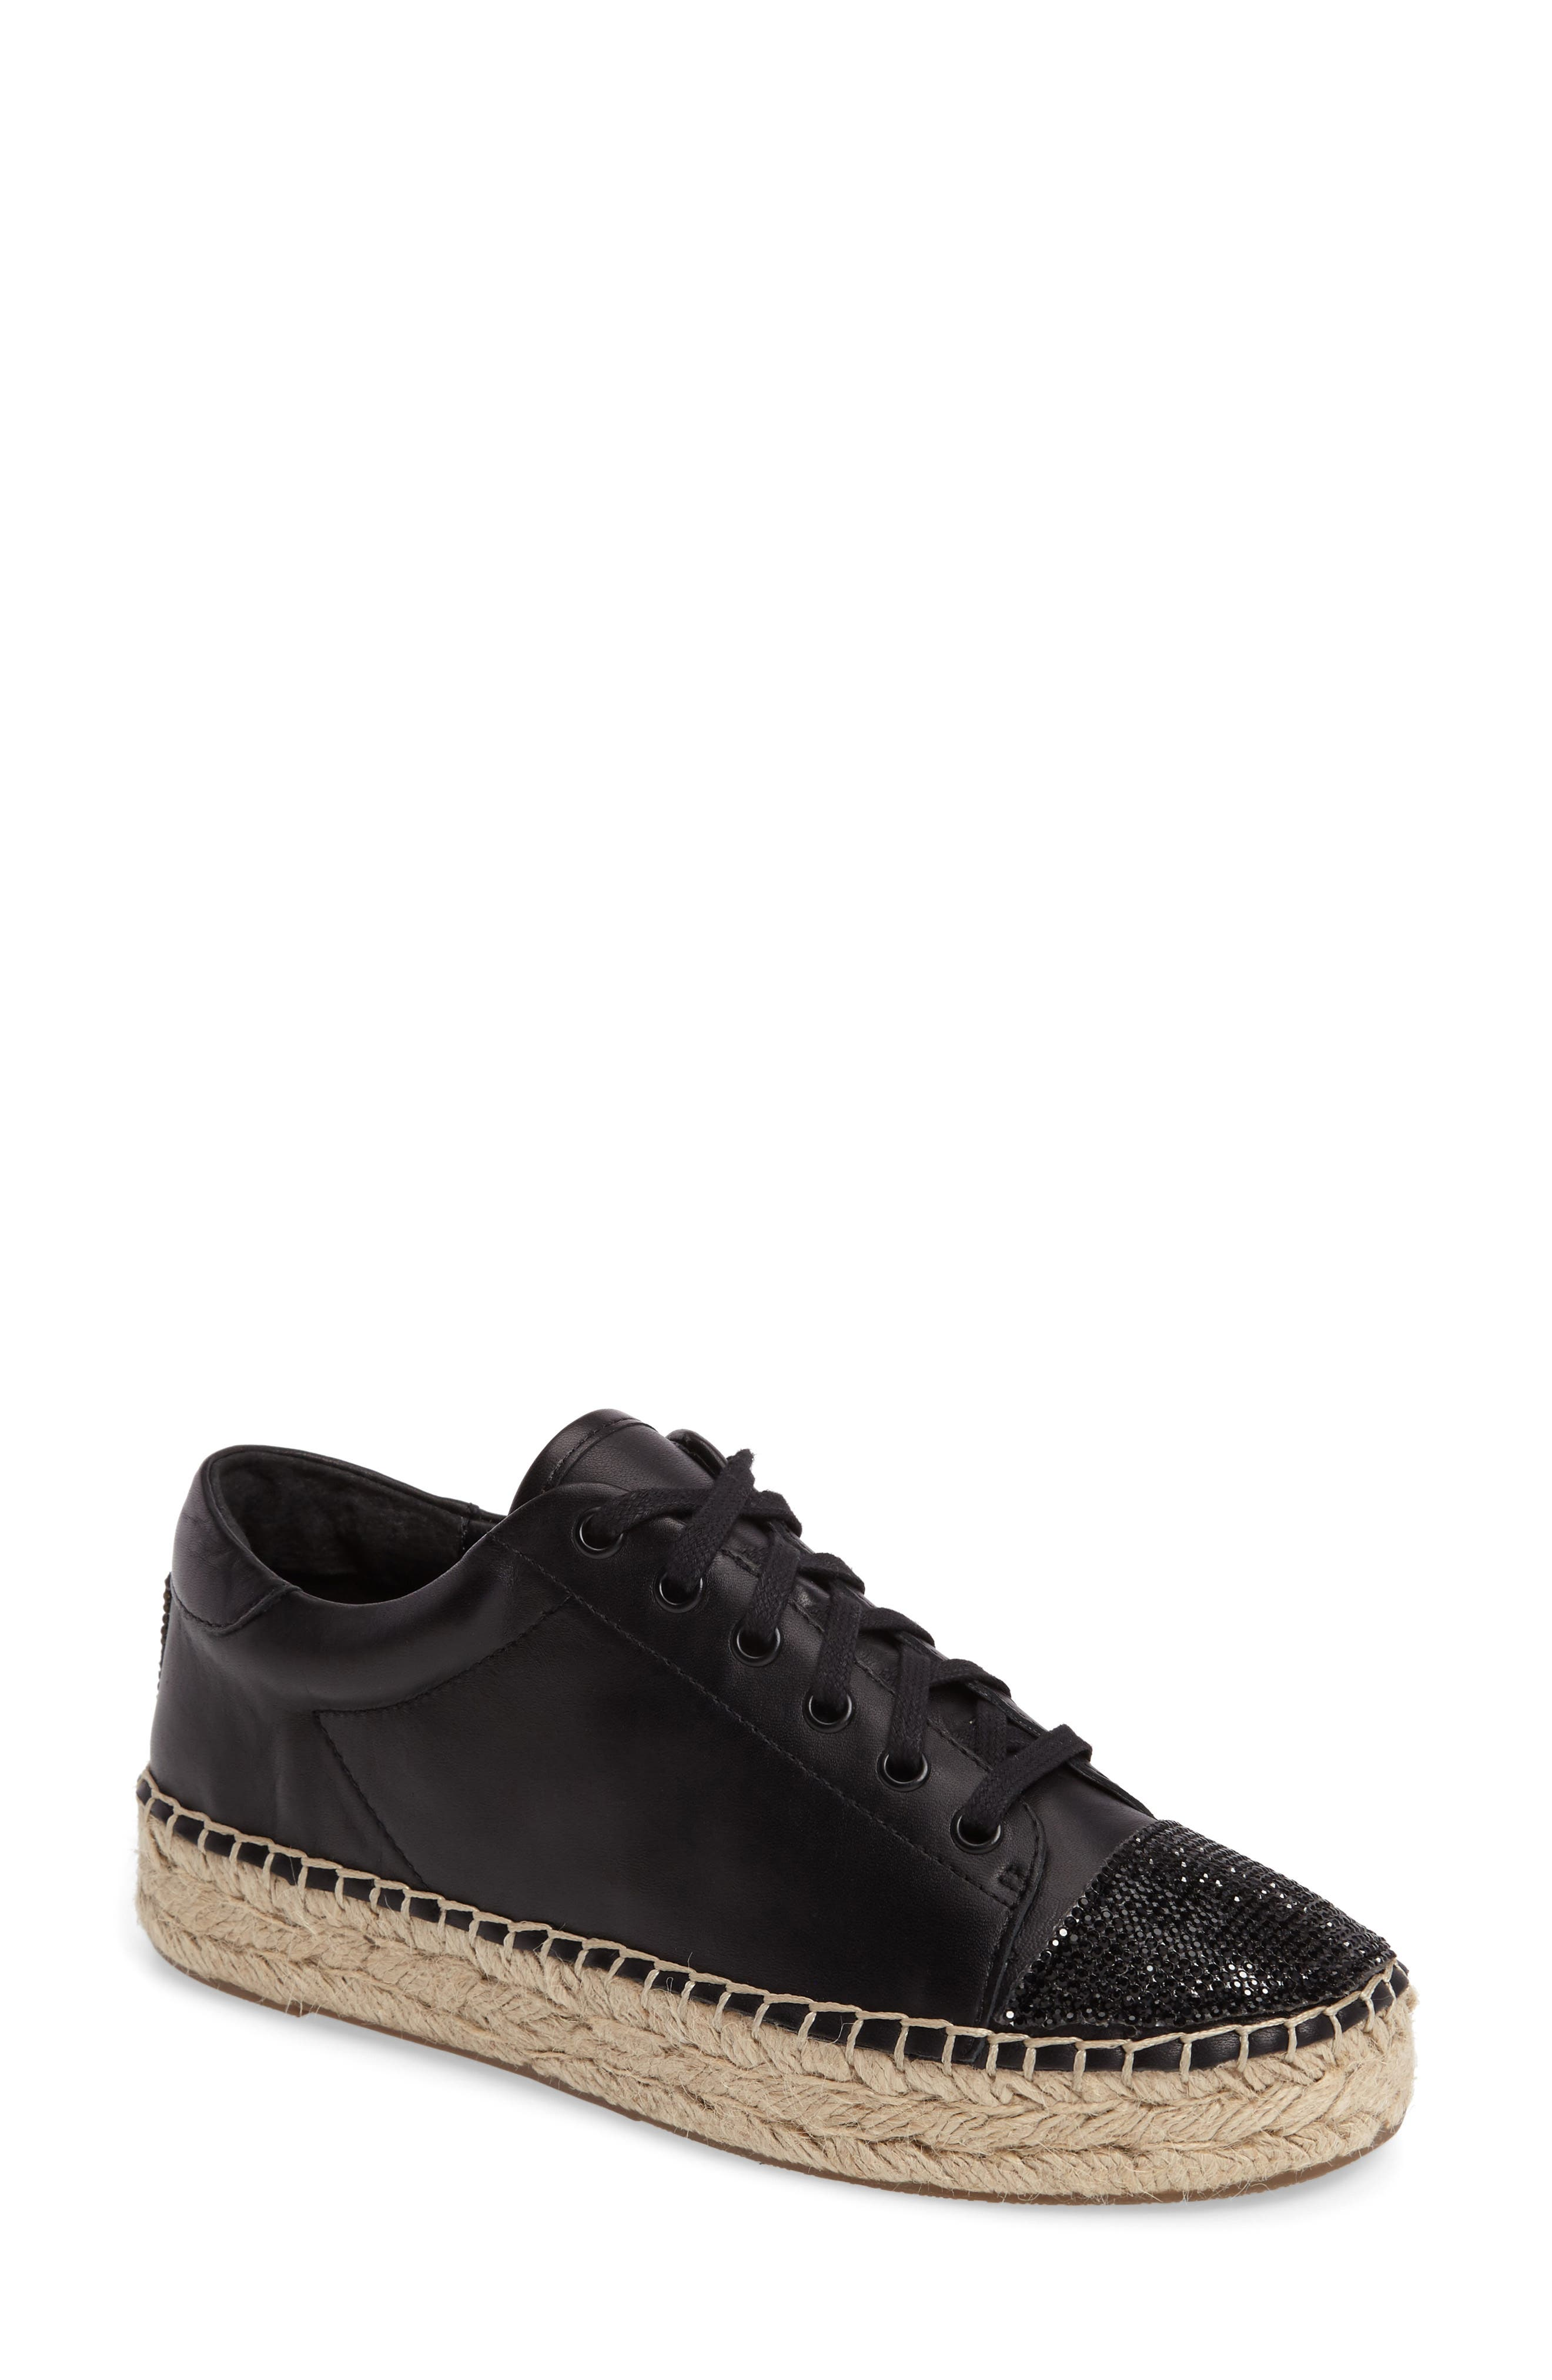 Alternate Image 1 Selected - KENDALL + KYLIE Joslyn Espadrille Sneaker (Women)